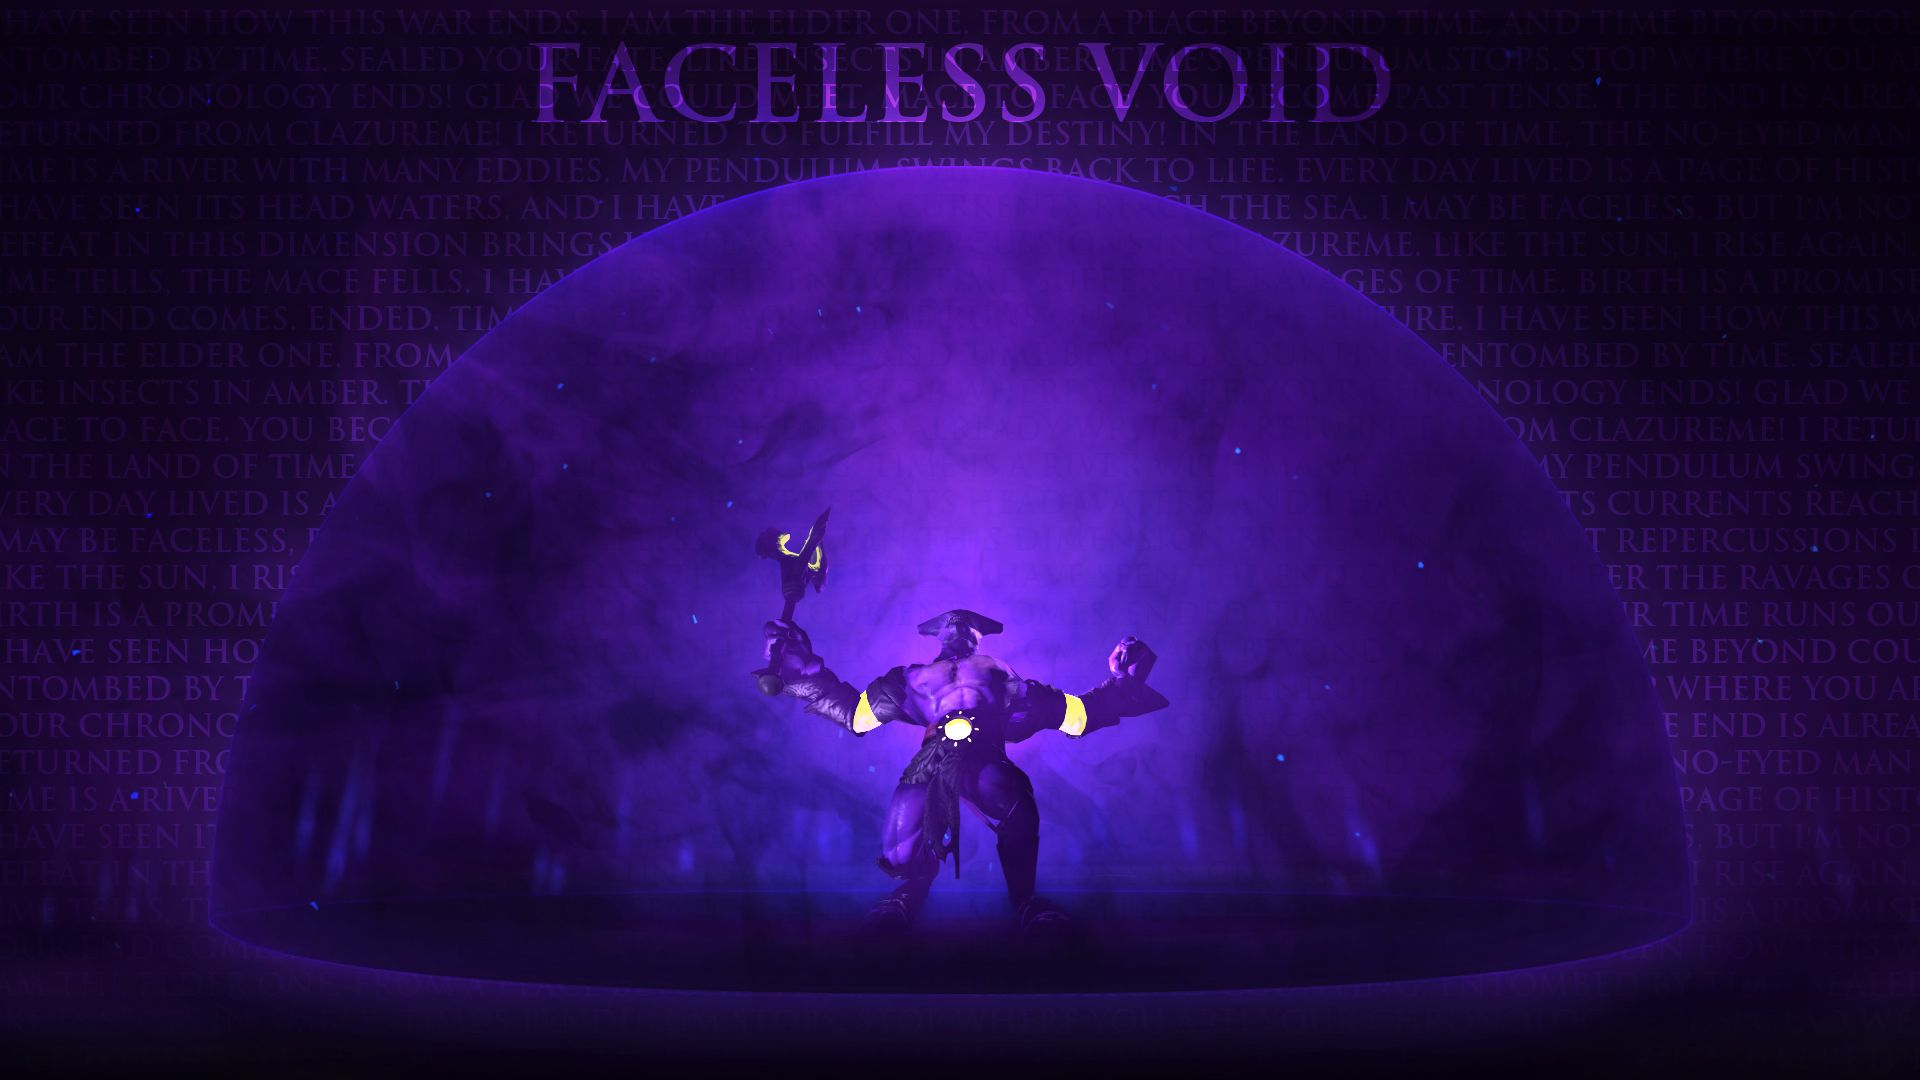 Dota 2 Faceless Void Background Click Wallpapers Dota 2 Wallpaper Background